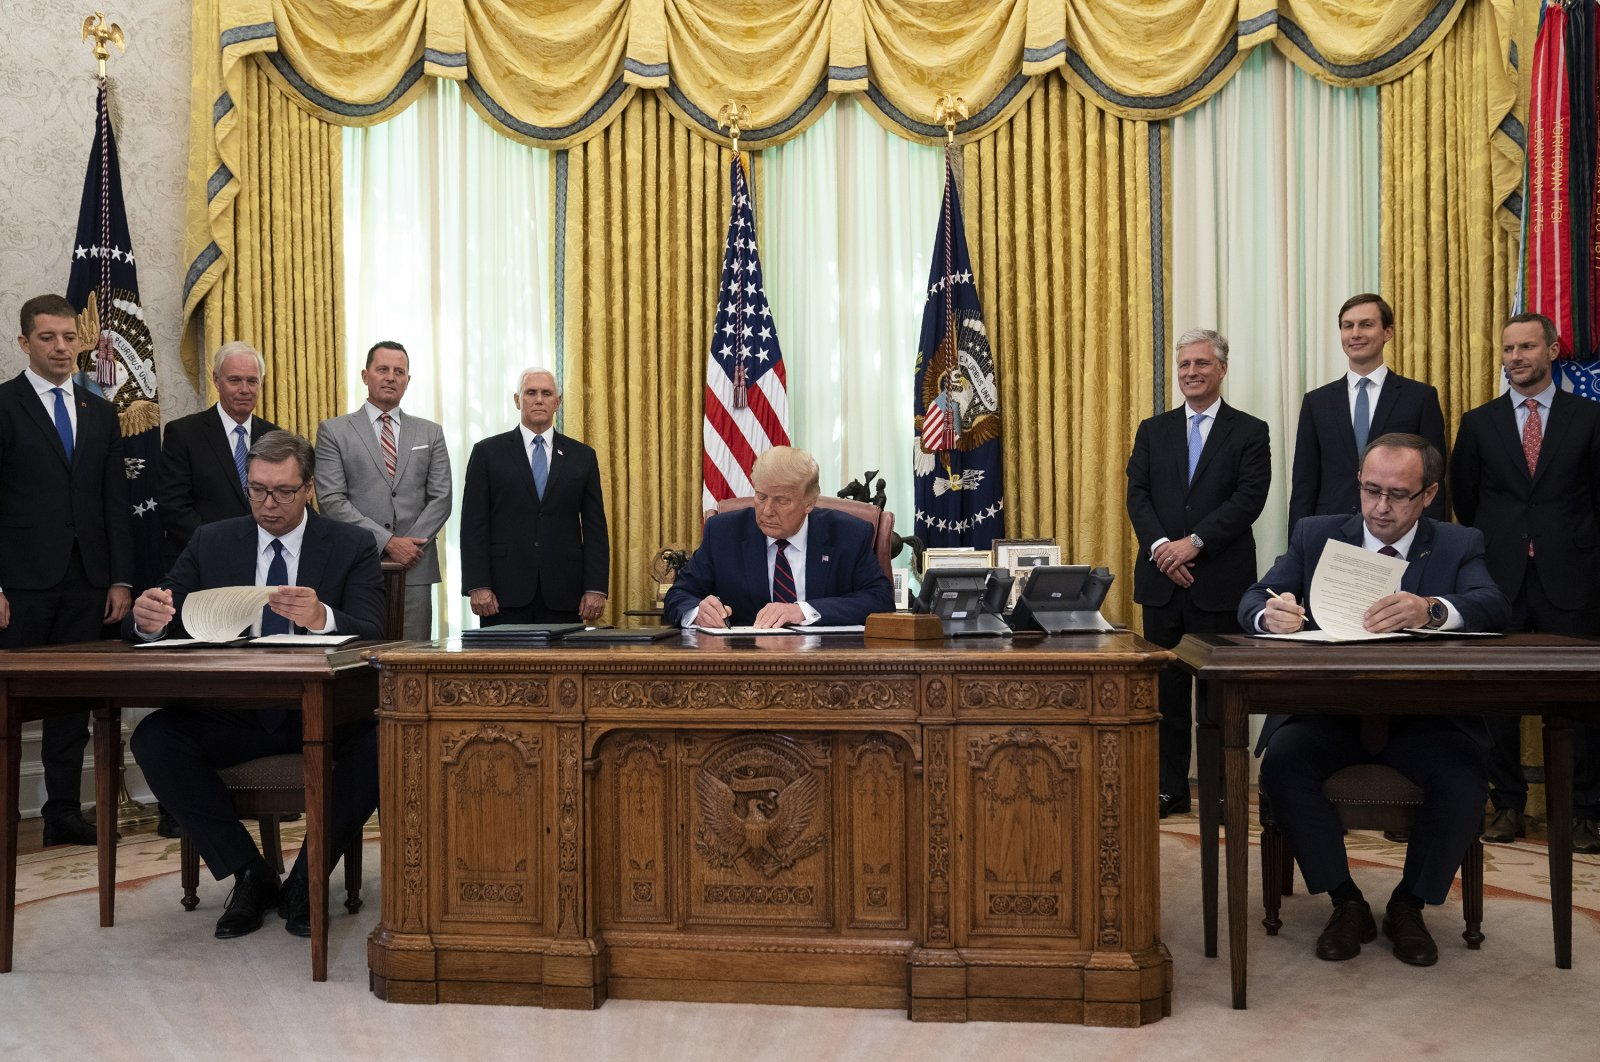 U.S. President Donald Trump participates in a signing ceremony with Serbian President Aleksandar Vucic, left, and Kosovar Prime Minister Avdullah Hoti, in the Oval Office of the White House, Friday, Sept. 4, 2020, in Washington. (AP Photo)